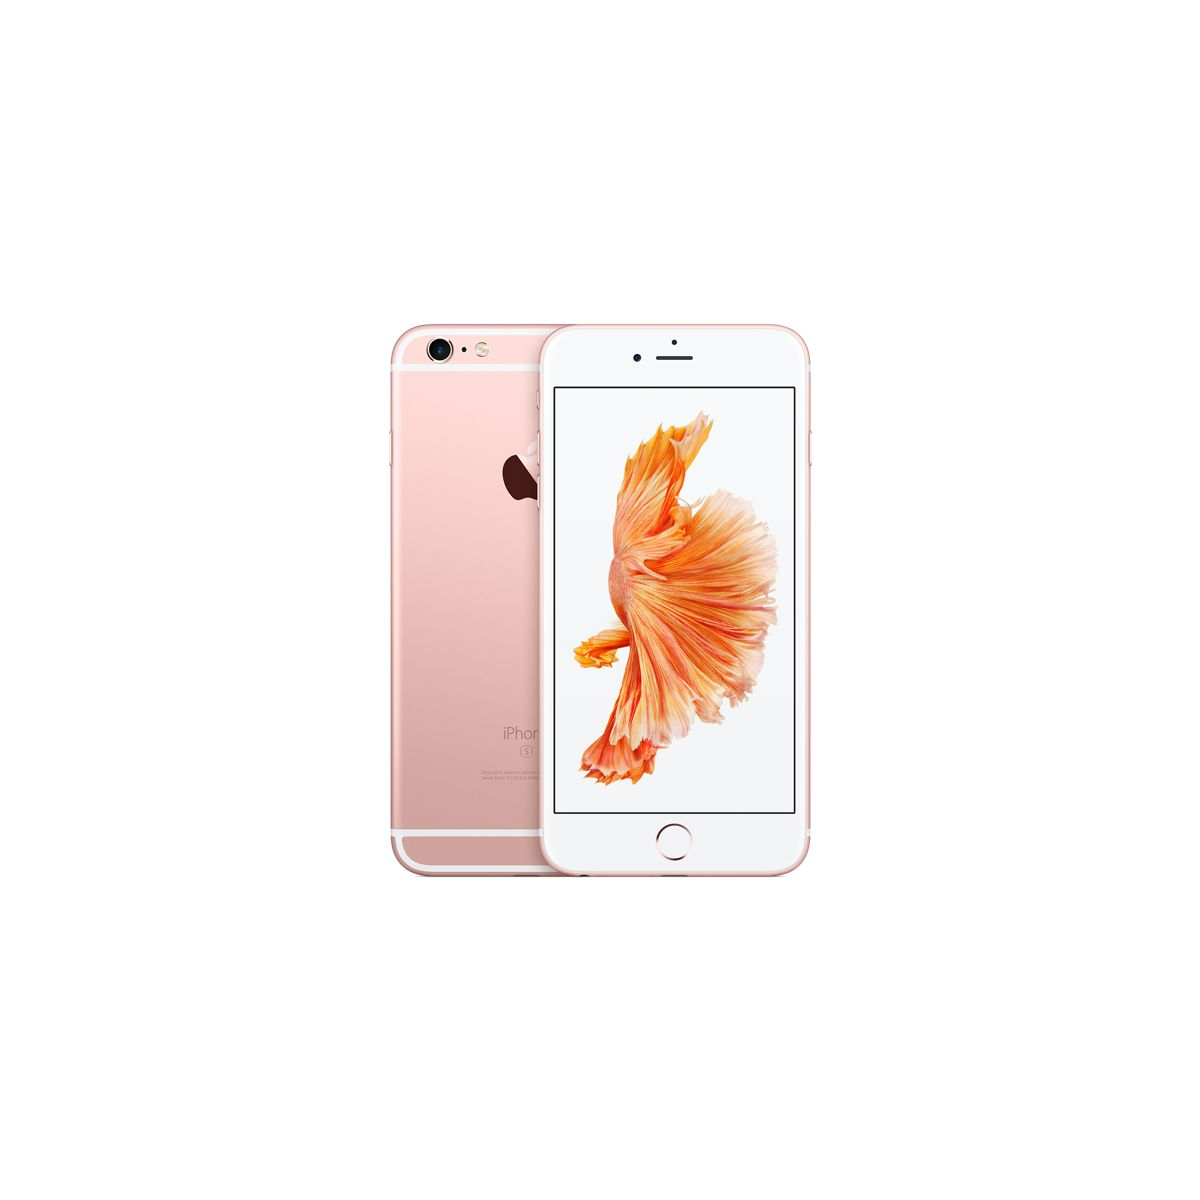 Smartphone APPLE iPhone 6s Plus Or Rose 64 Go (MKU92ZD/A)